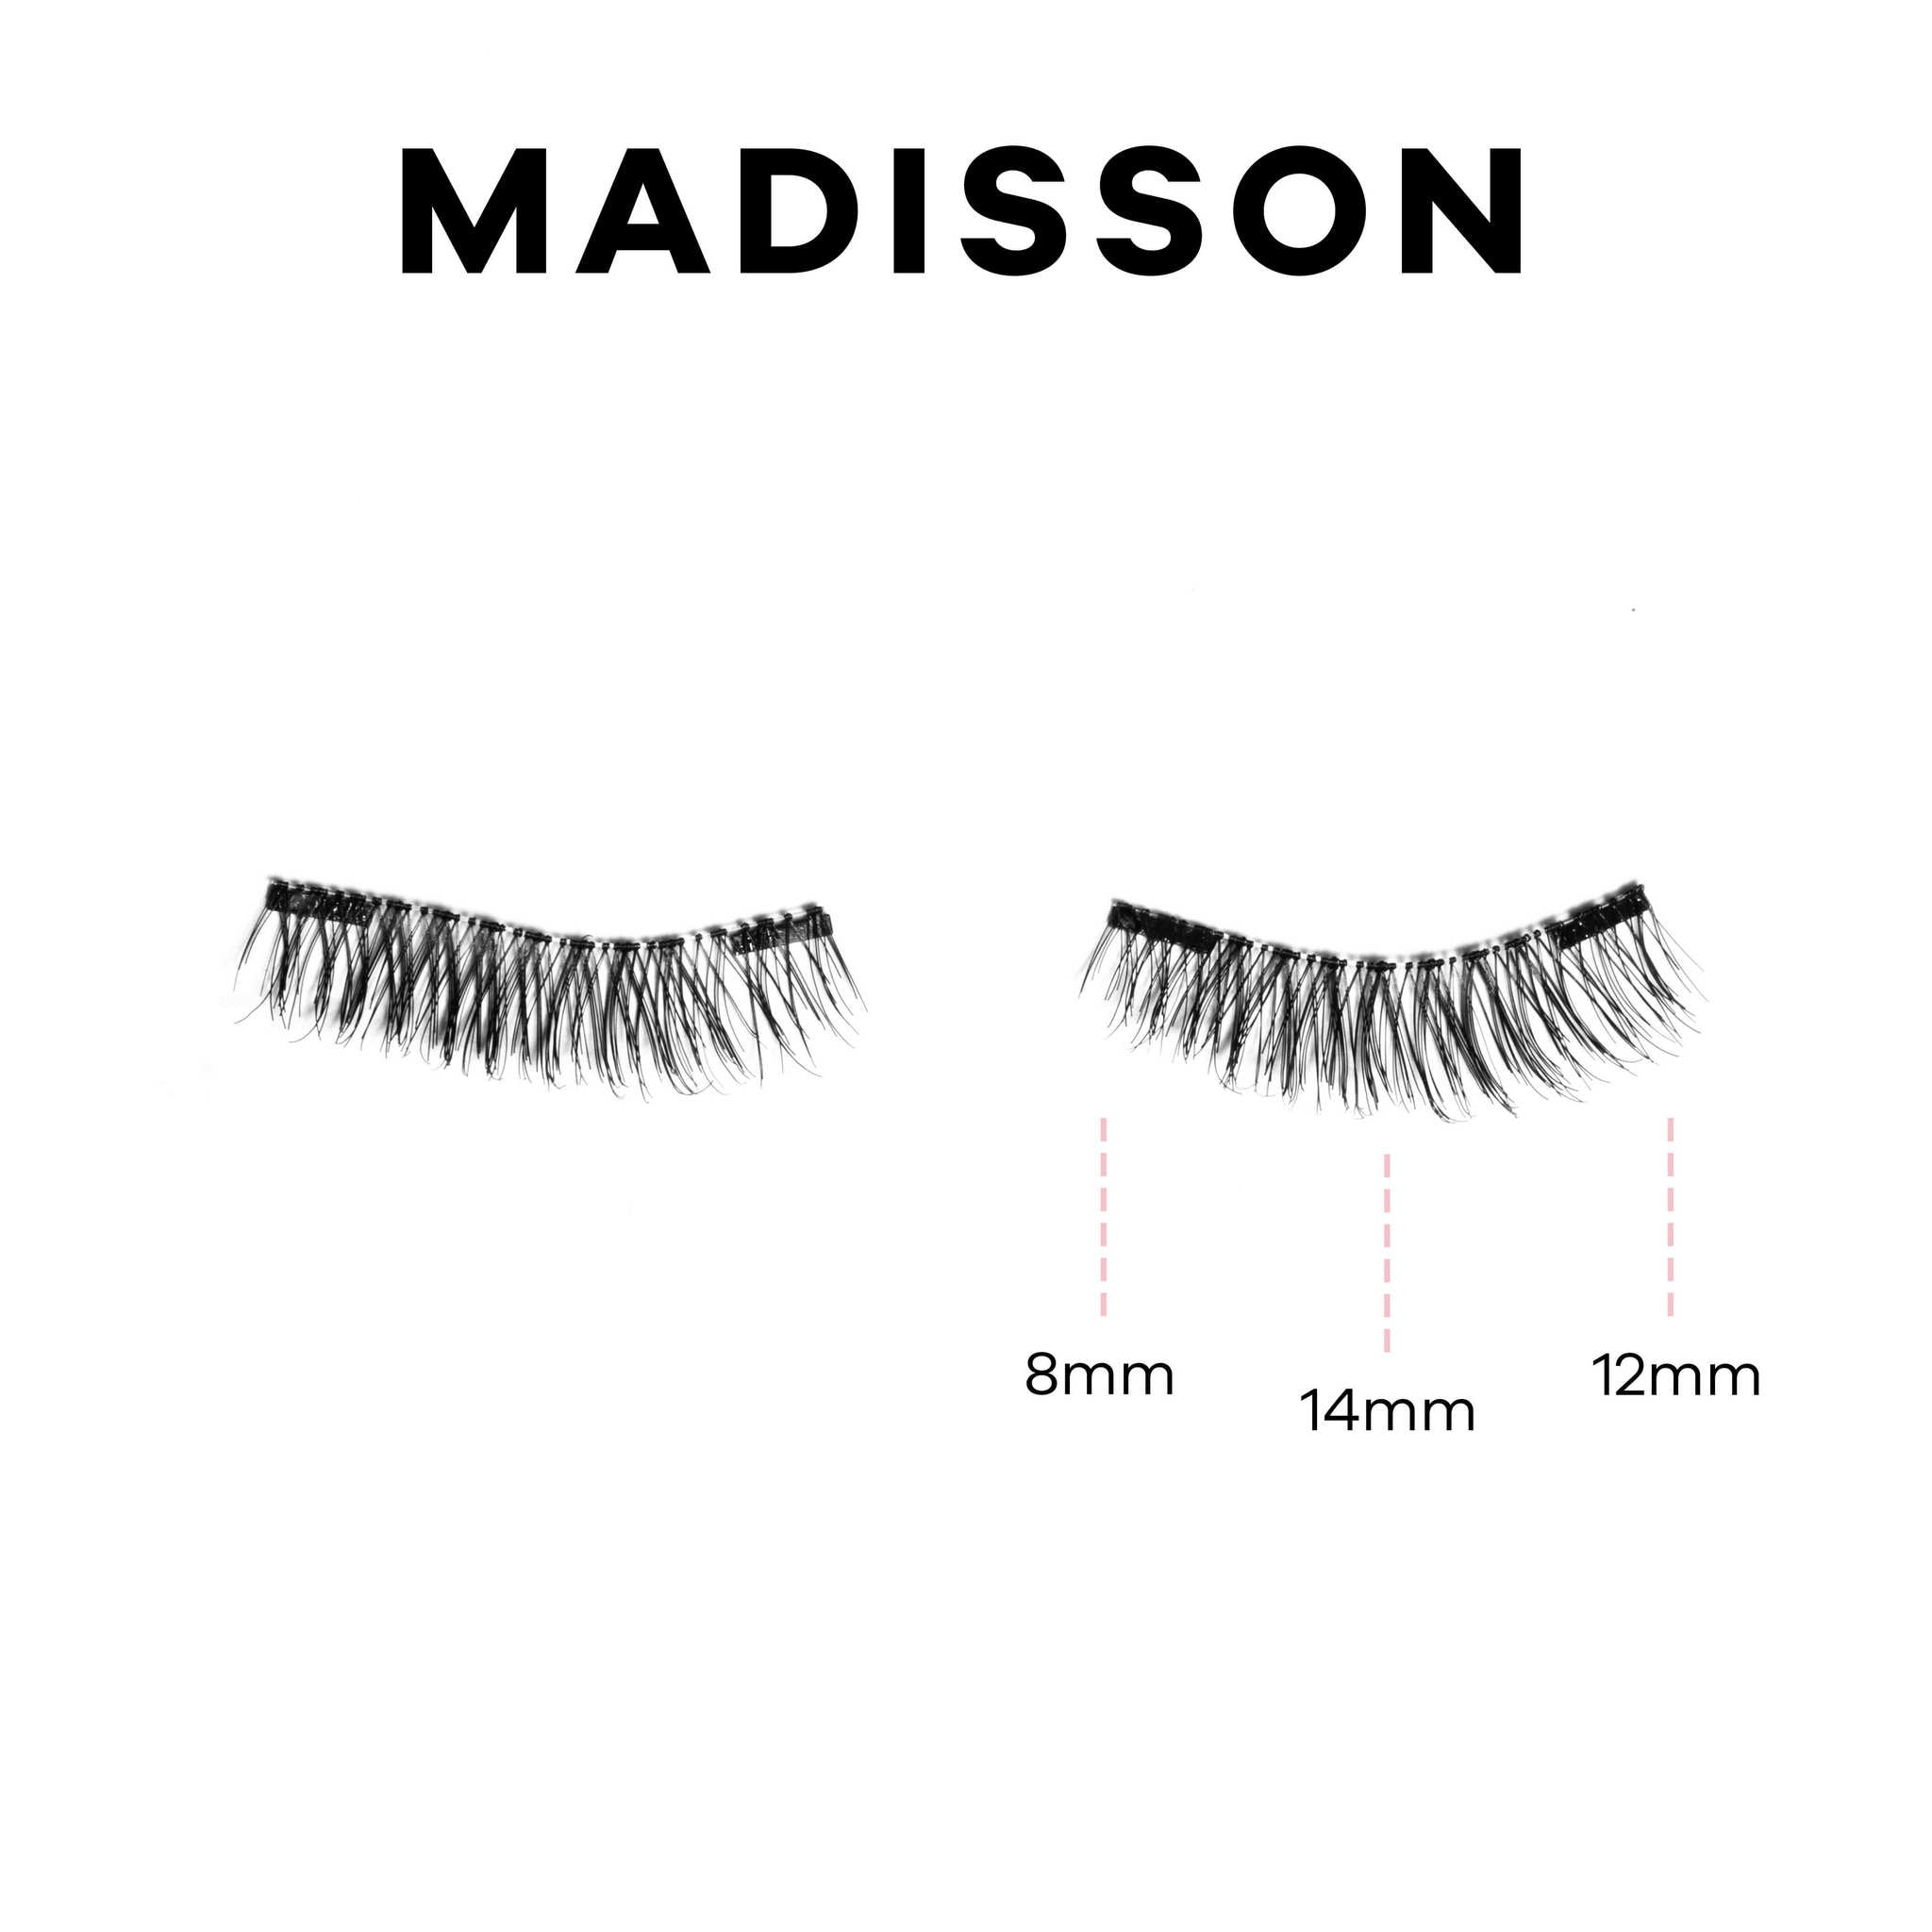 files/EL_lash_guide_madisson.jpg